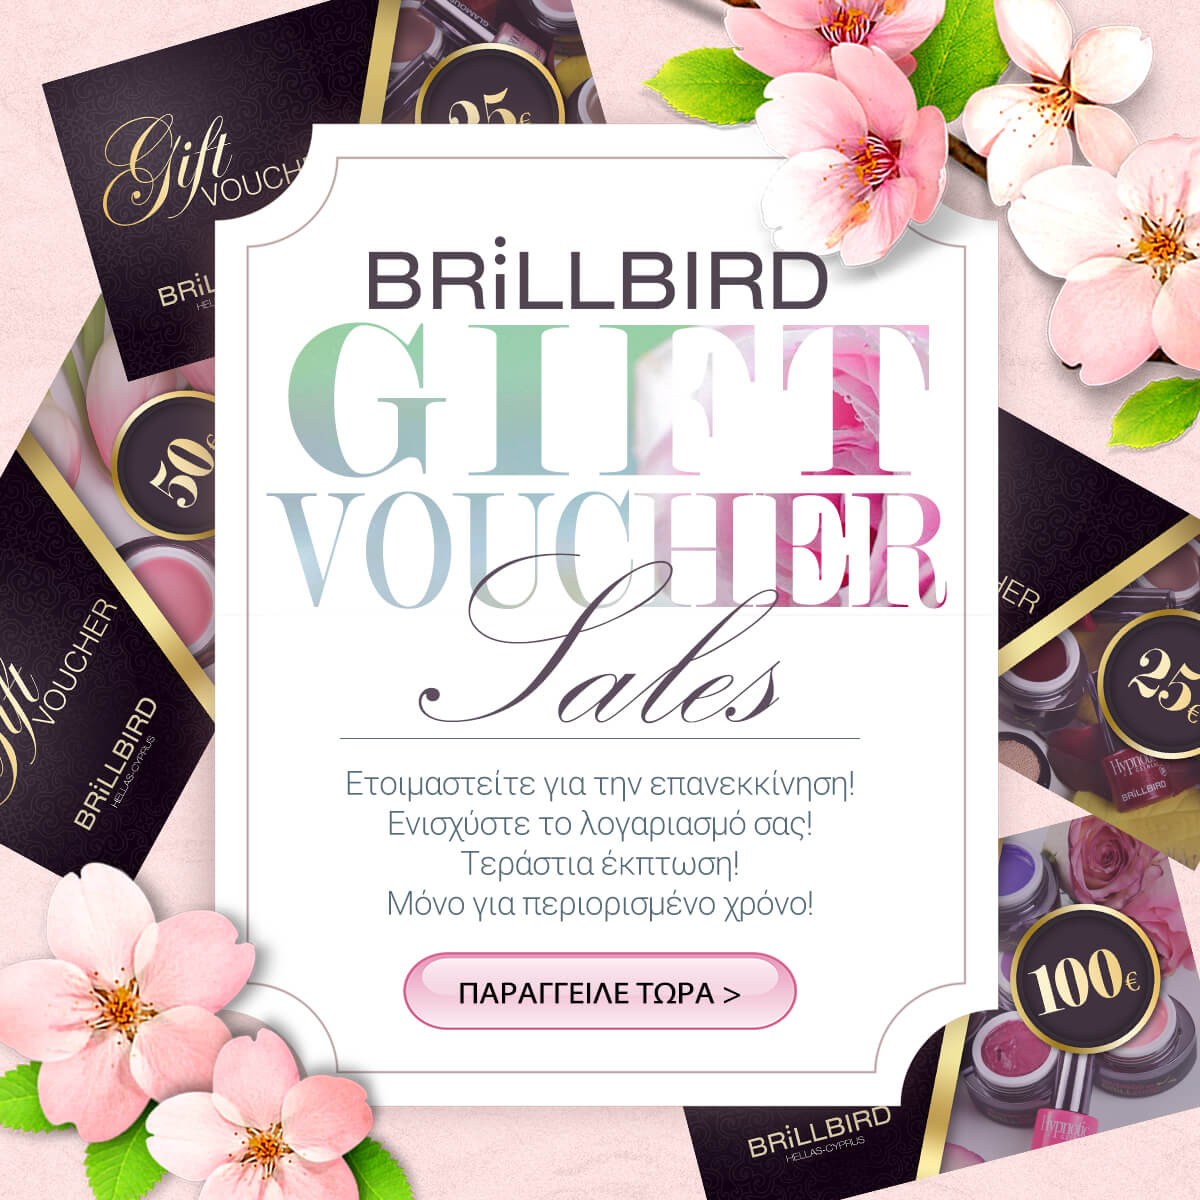 Gift Voucher Promo BRiLLBIRD GREECE